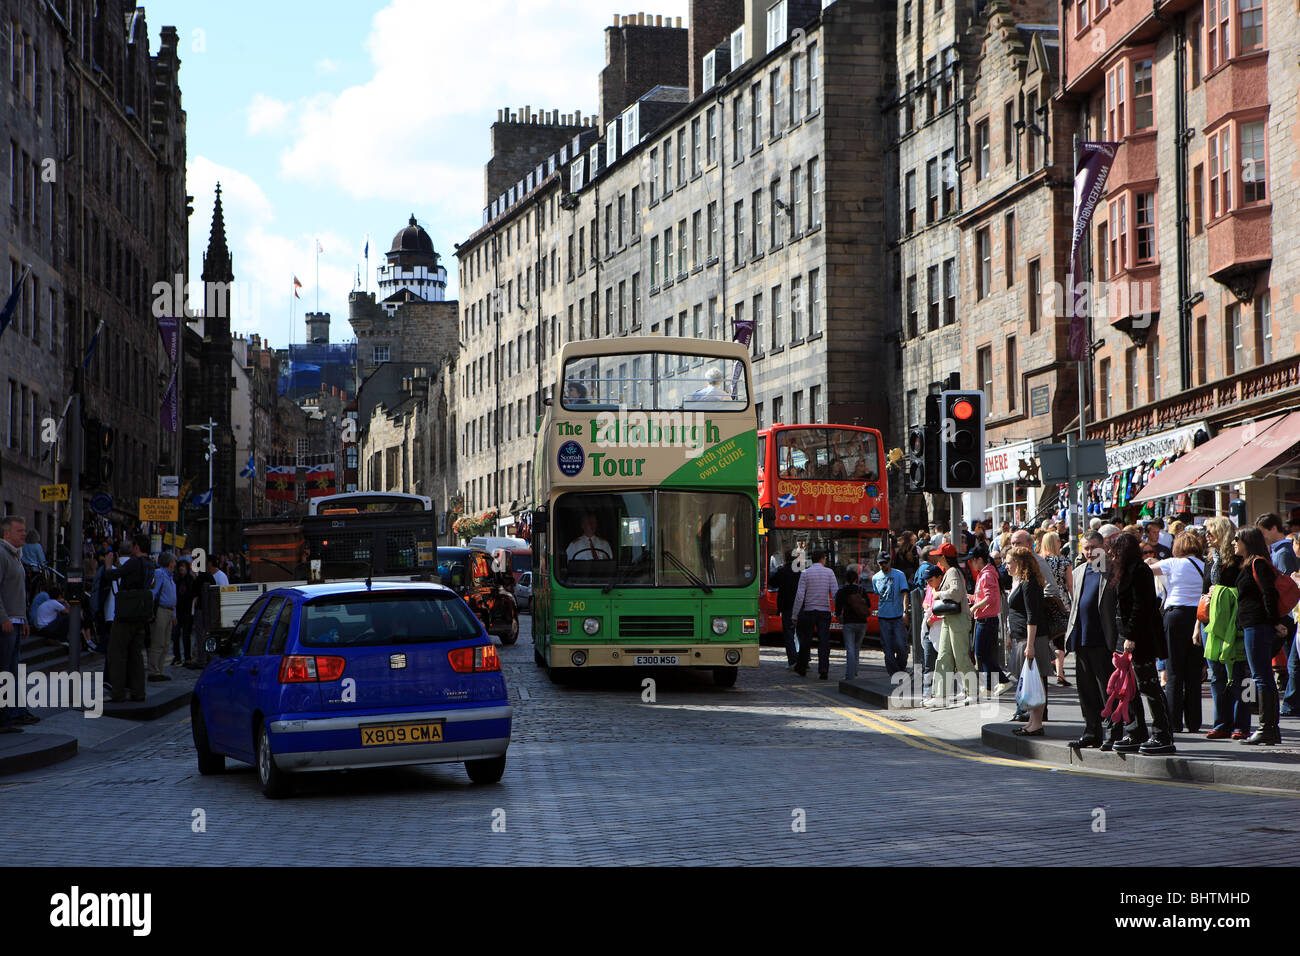 Tour bus, traffic and crowds on the Royal Mile in Edinburgh - Stock Image